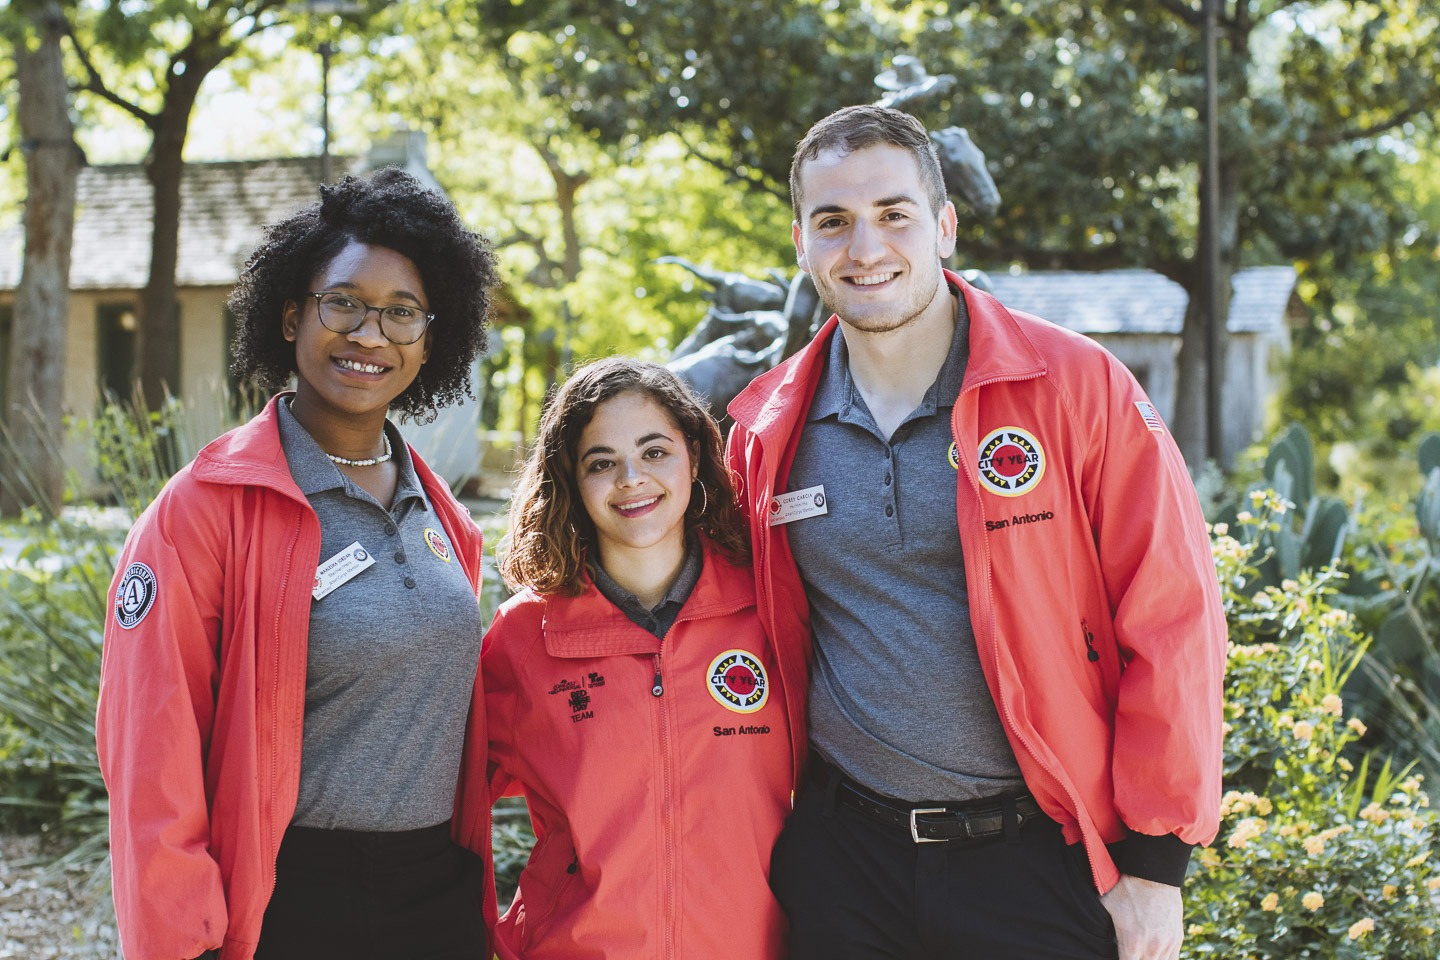 3 AmeriCorps members smile at the camera wearing their red City Year jackets